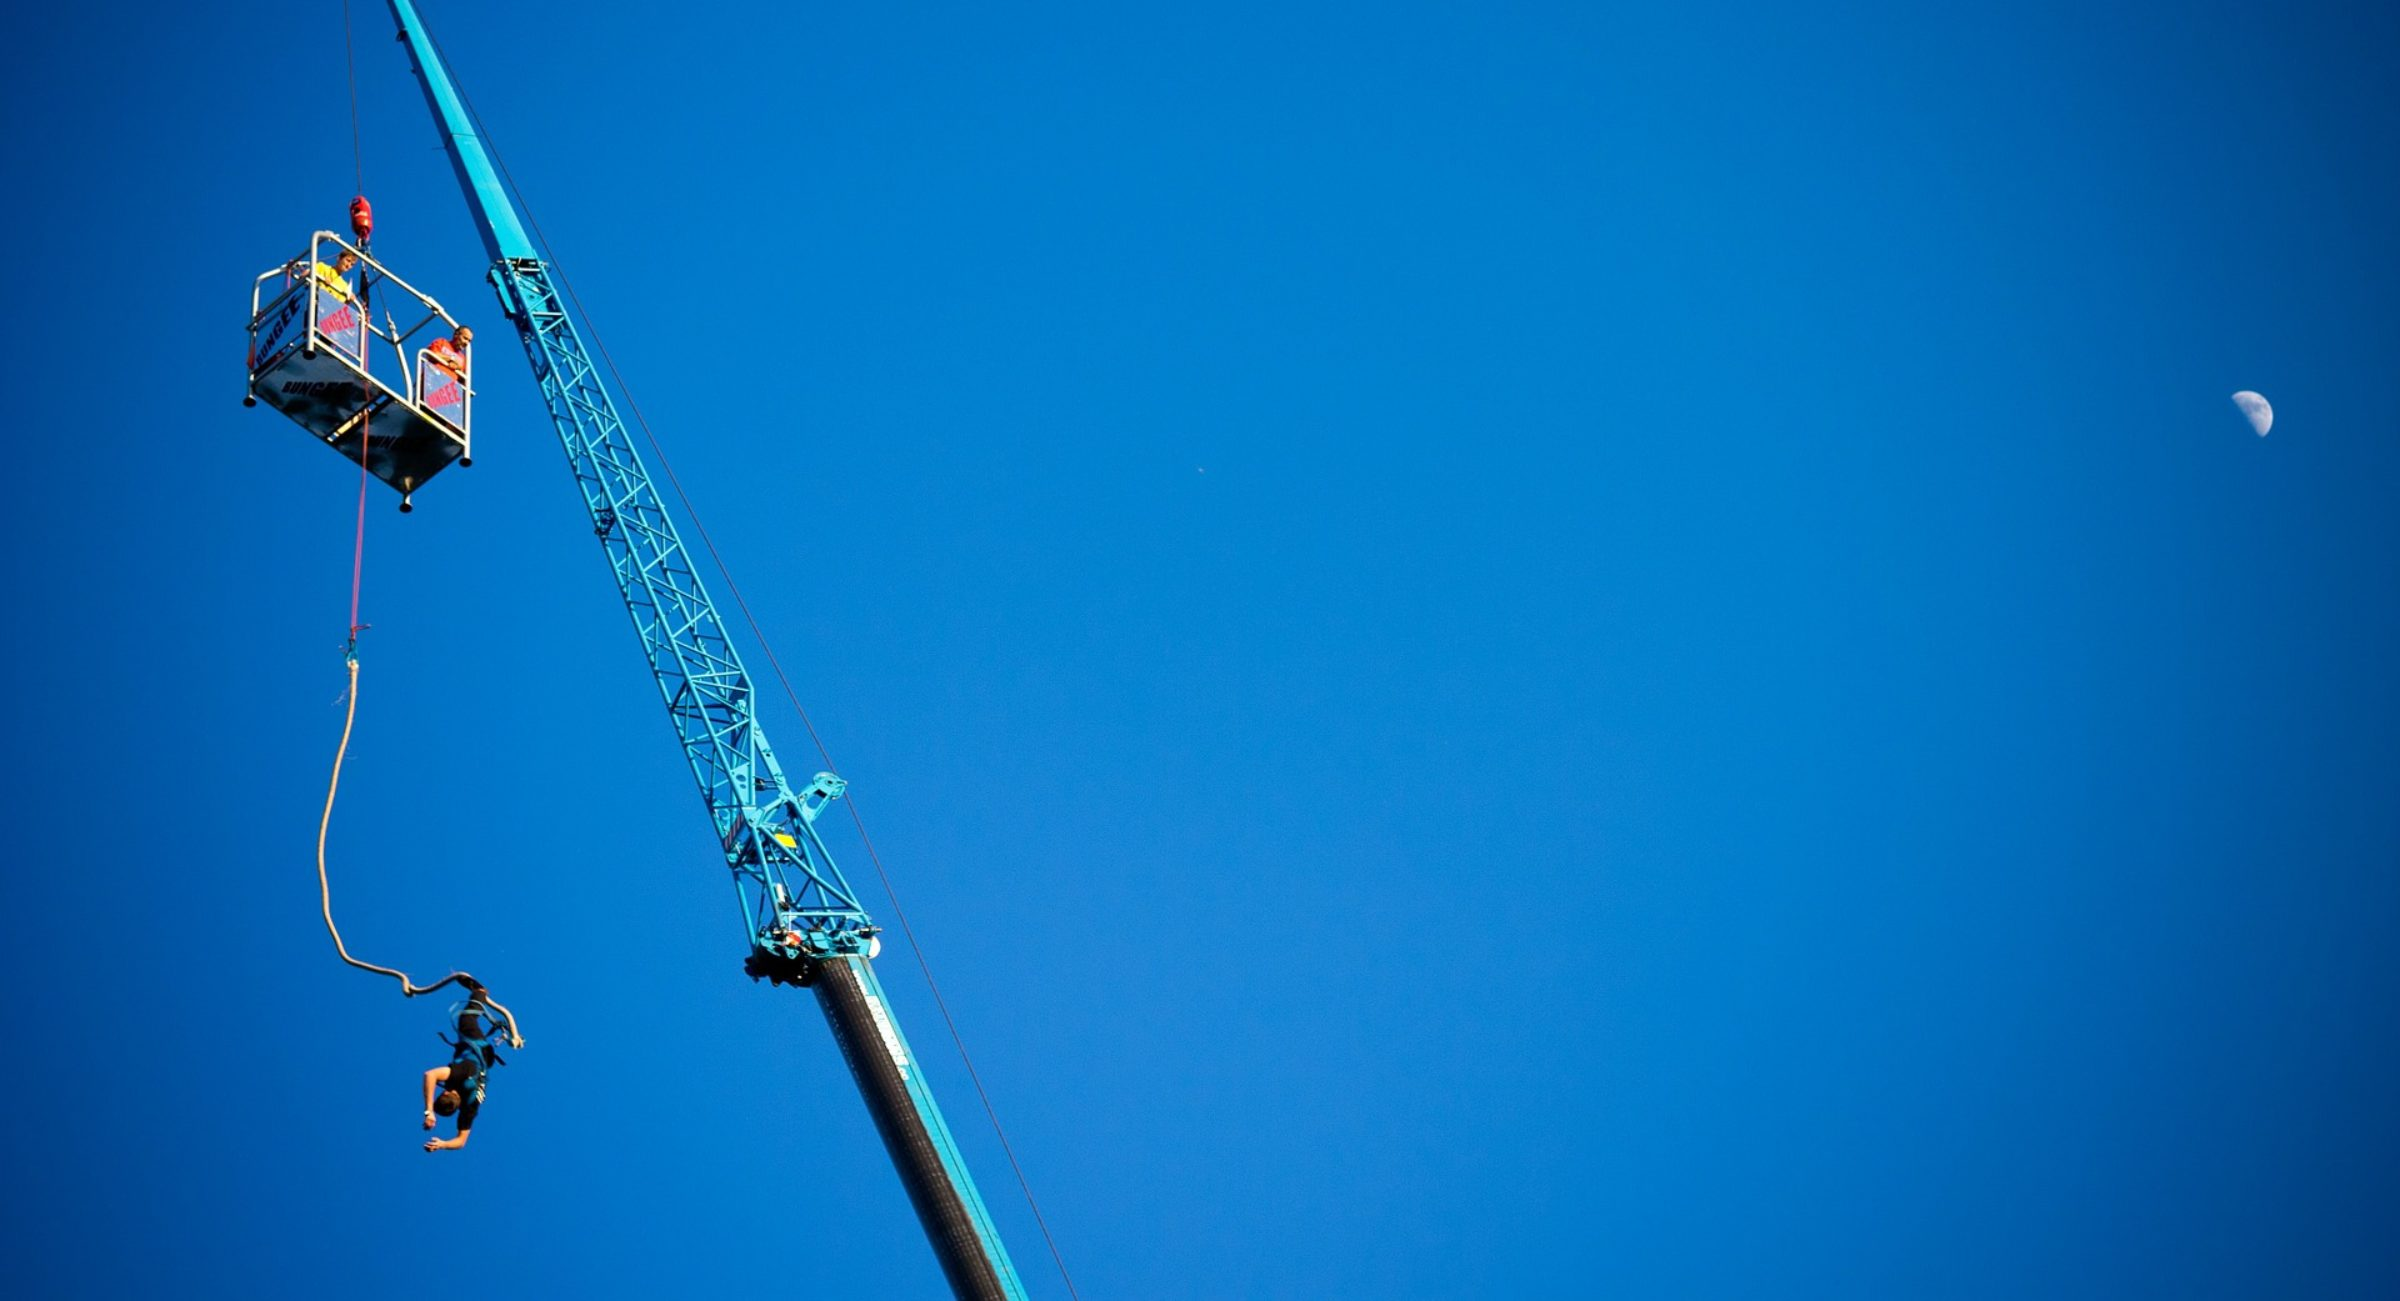 cropped-bungee-jumping-from-a-crane.jpg